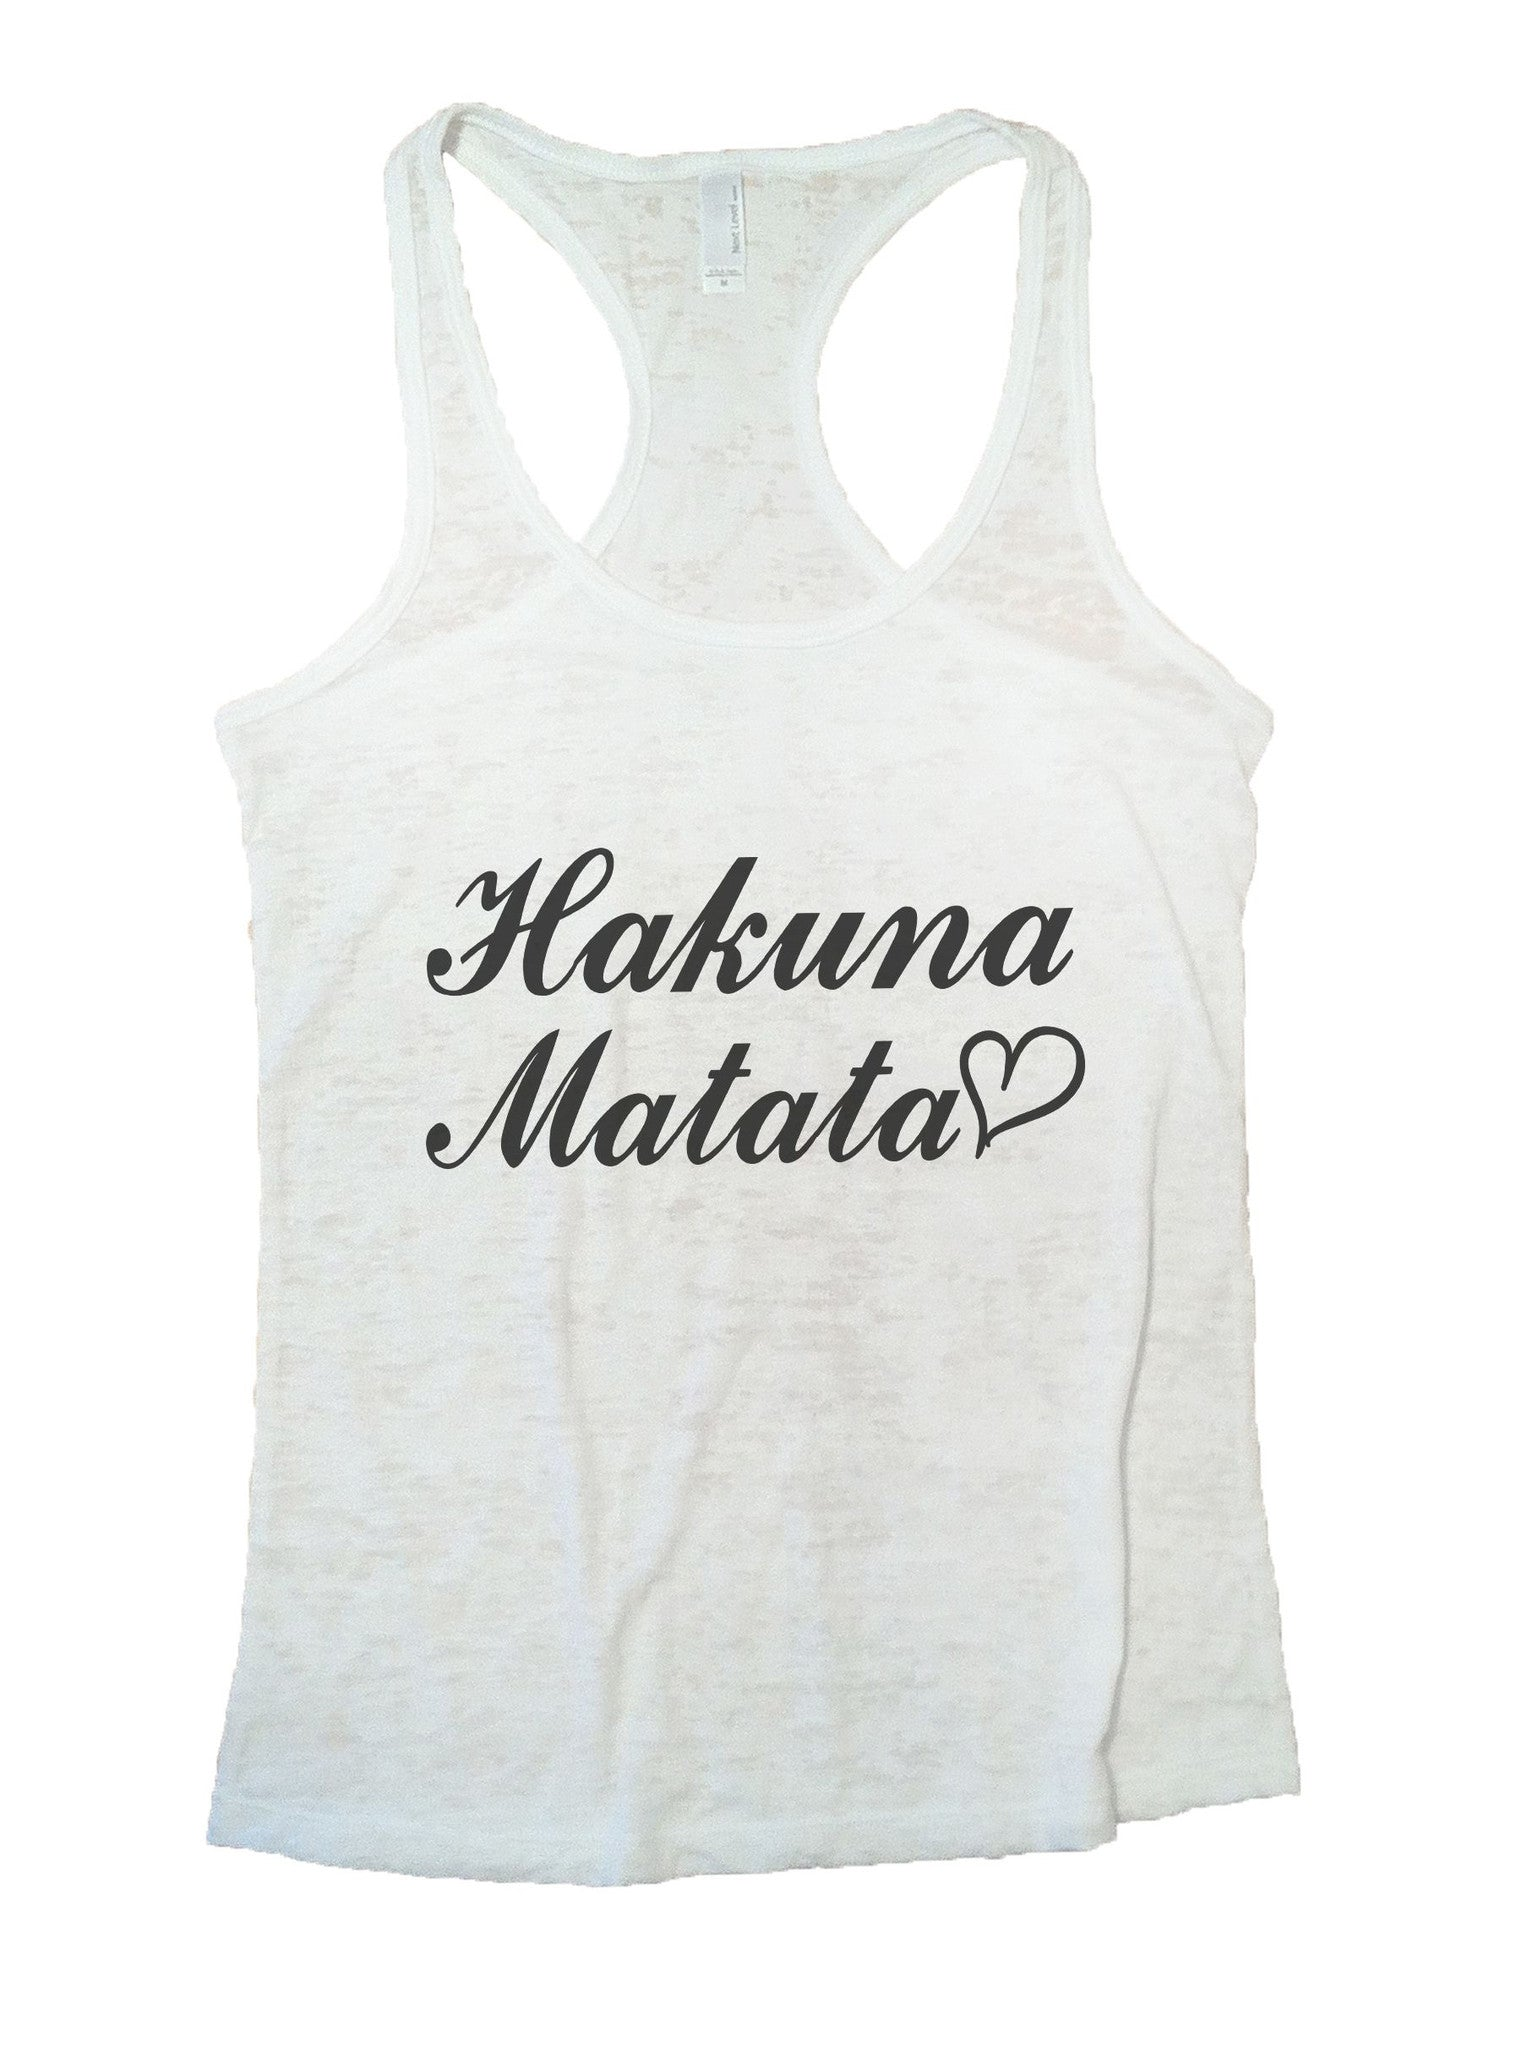 Hakuna Matata Burnout Tank Top By BurnoutTankTops.com - 937 - Funny Shirts Tank Tops Burnouts and Triblends  - 6